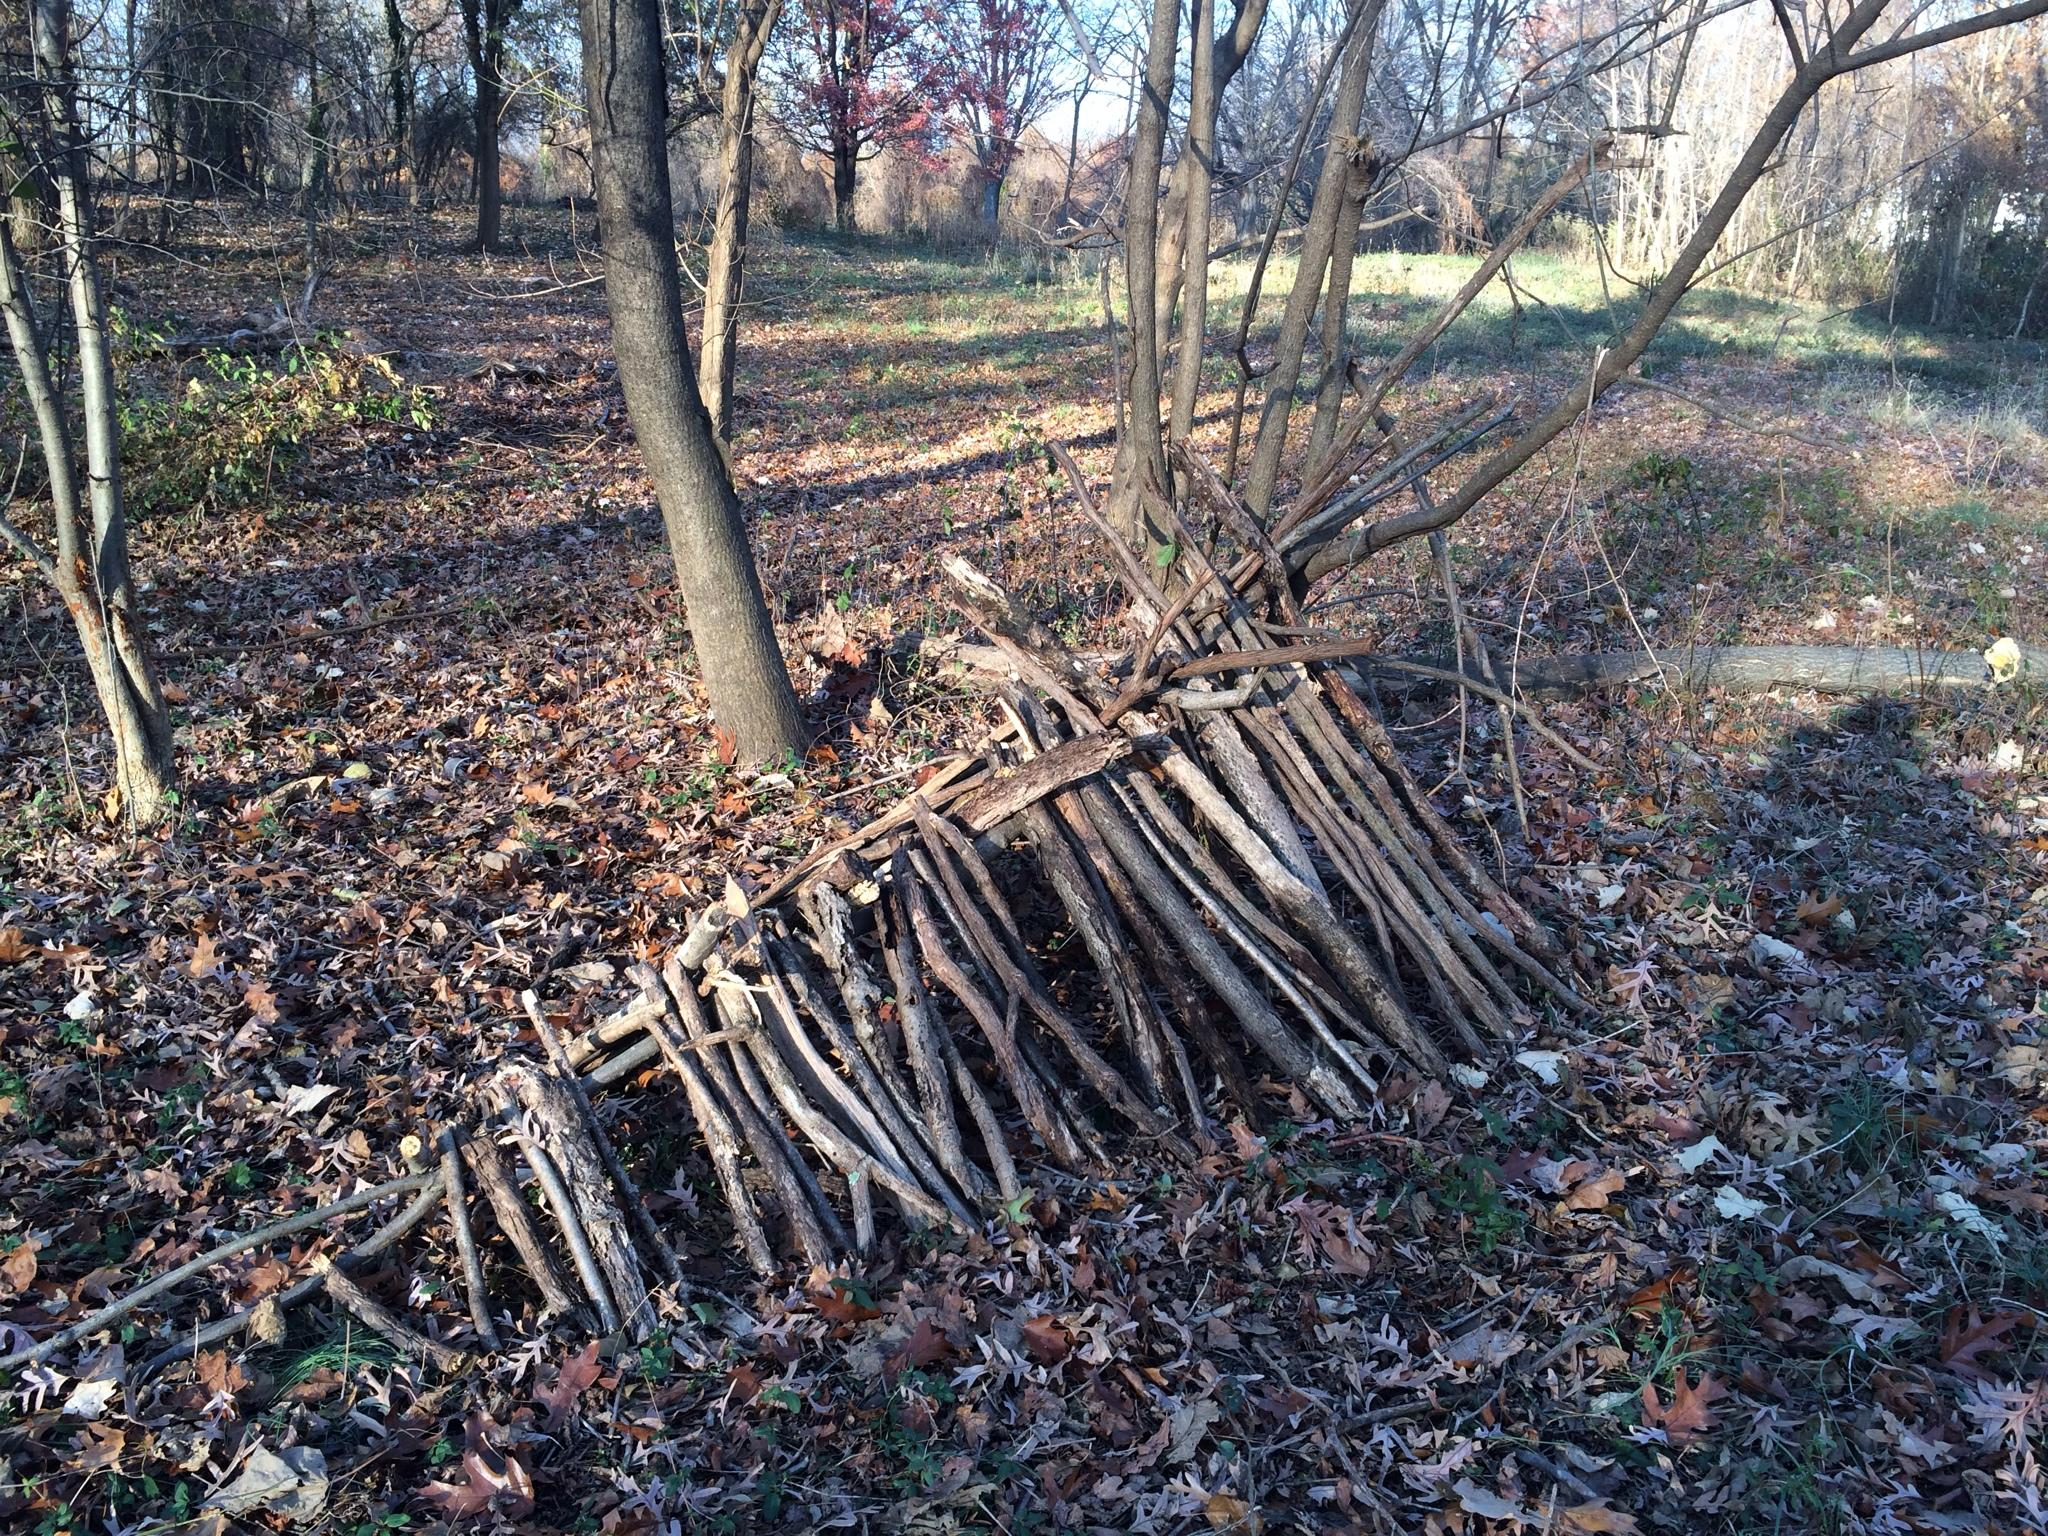 RT @AndyRileyish: In a break in #veep filming, started making a shelter from sticks & leaf litter in a Baltimore park. Showbiz. http://t.co…